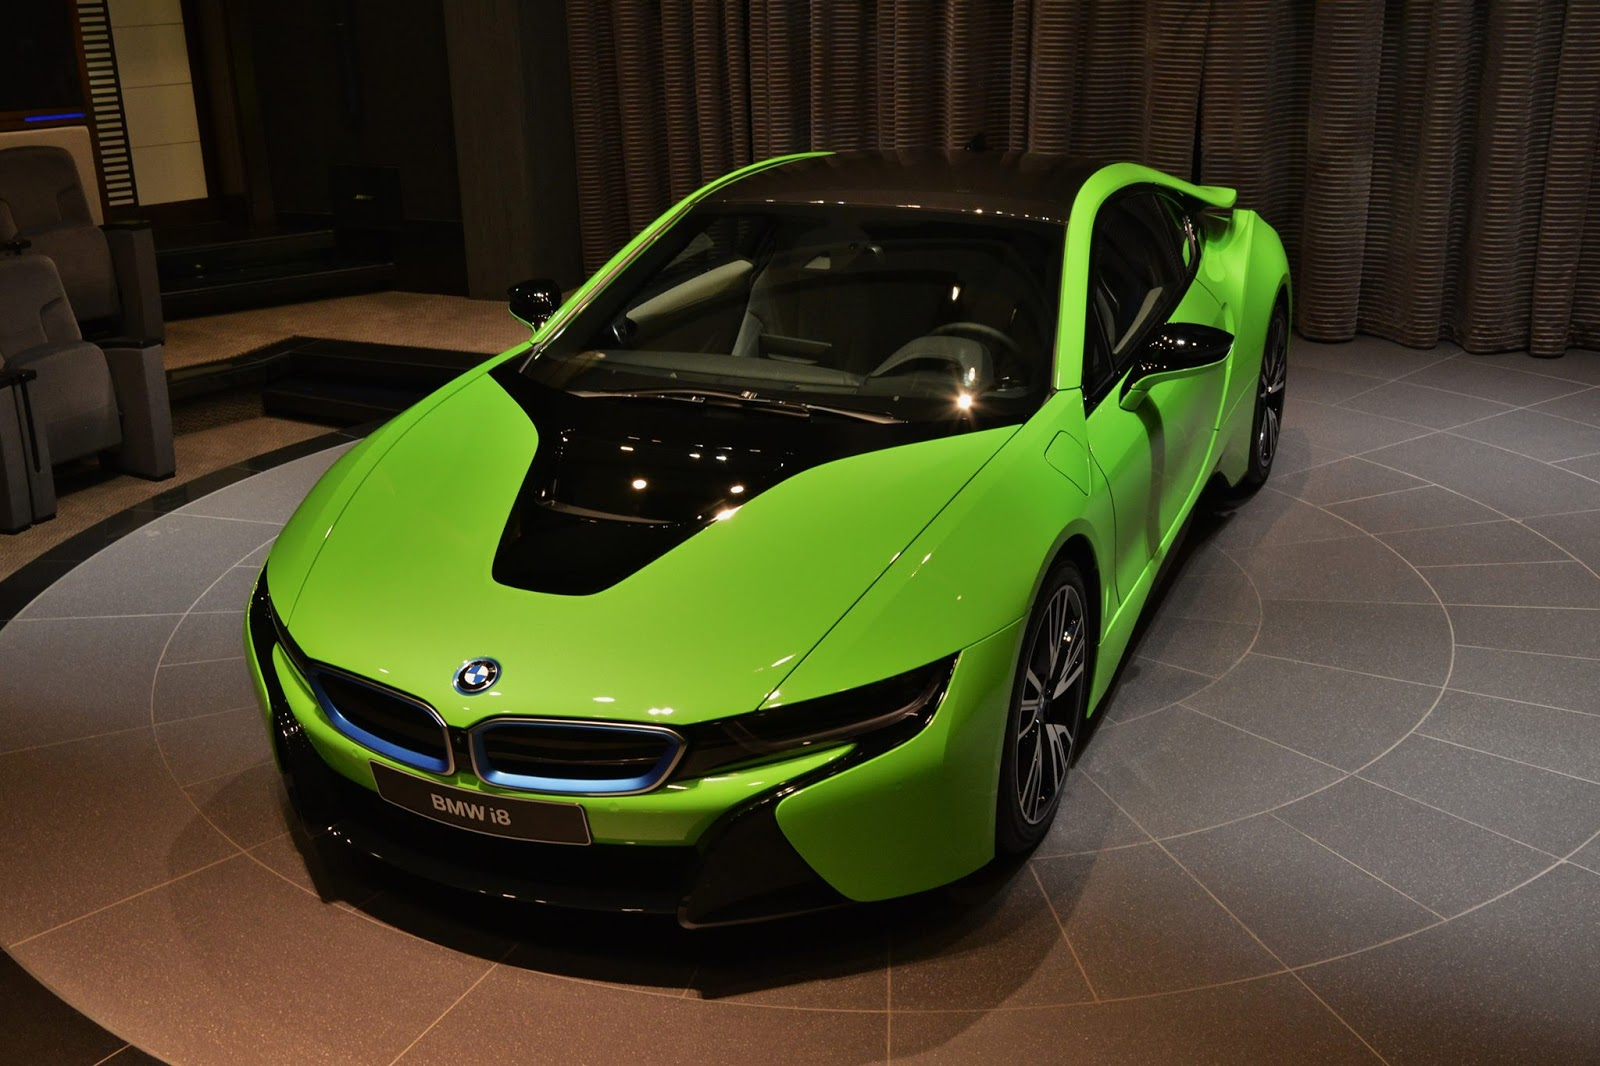 bmw i8 lime cars sports wrap ever neon dealership abu seen individual dressed before shows different hate dhabi bimmerfest autoevolution